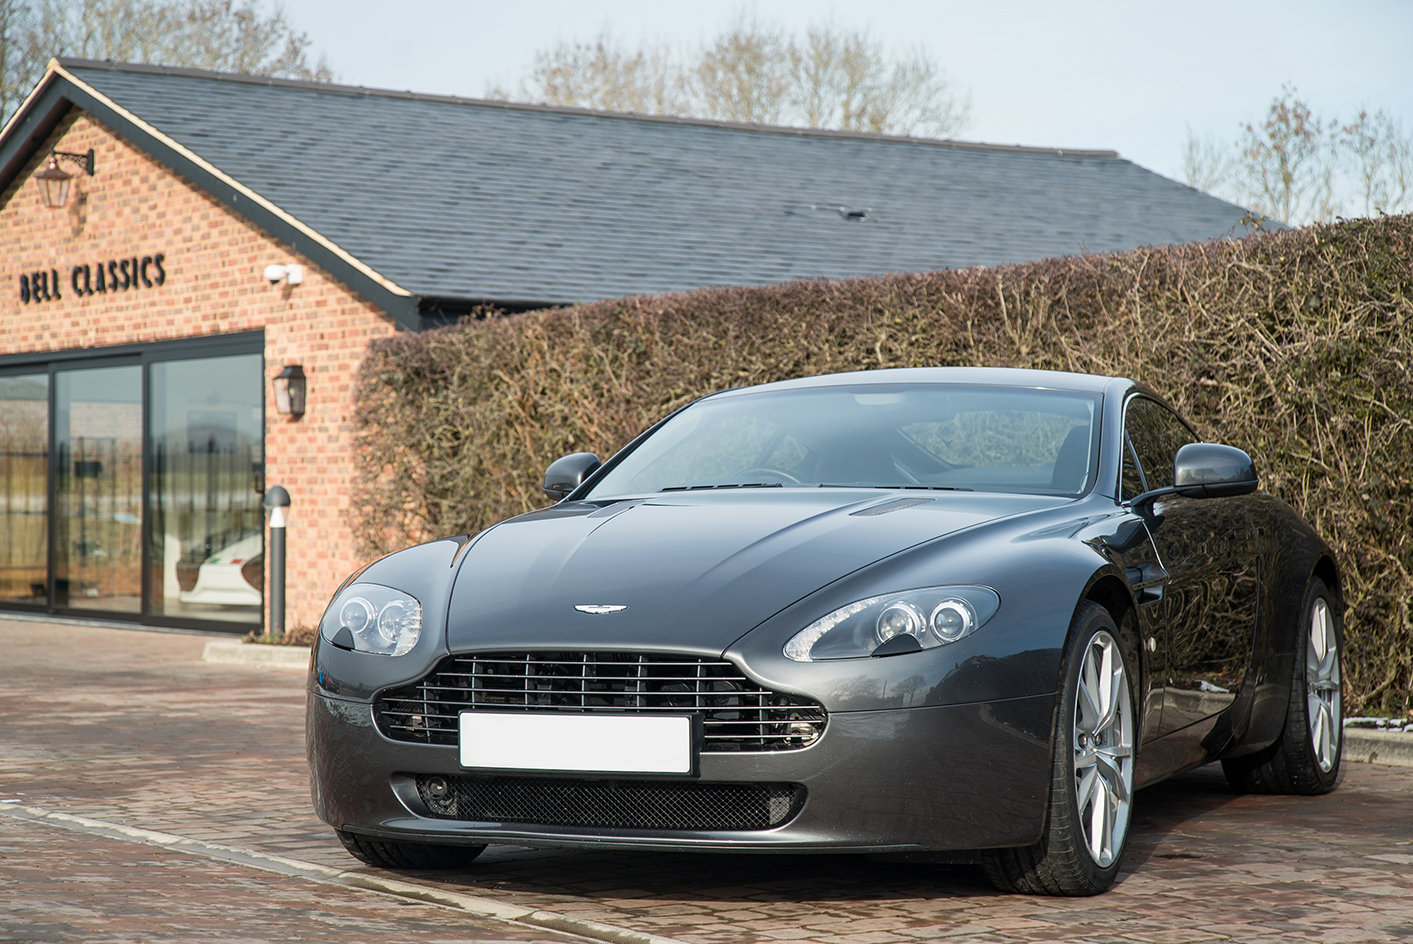 2011 Aston Martin Vantage 4.7 Sportshift Coupe For Sale (picture 2 of 6)